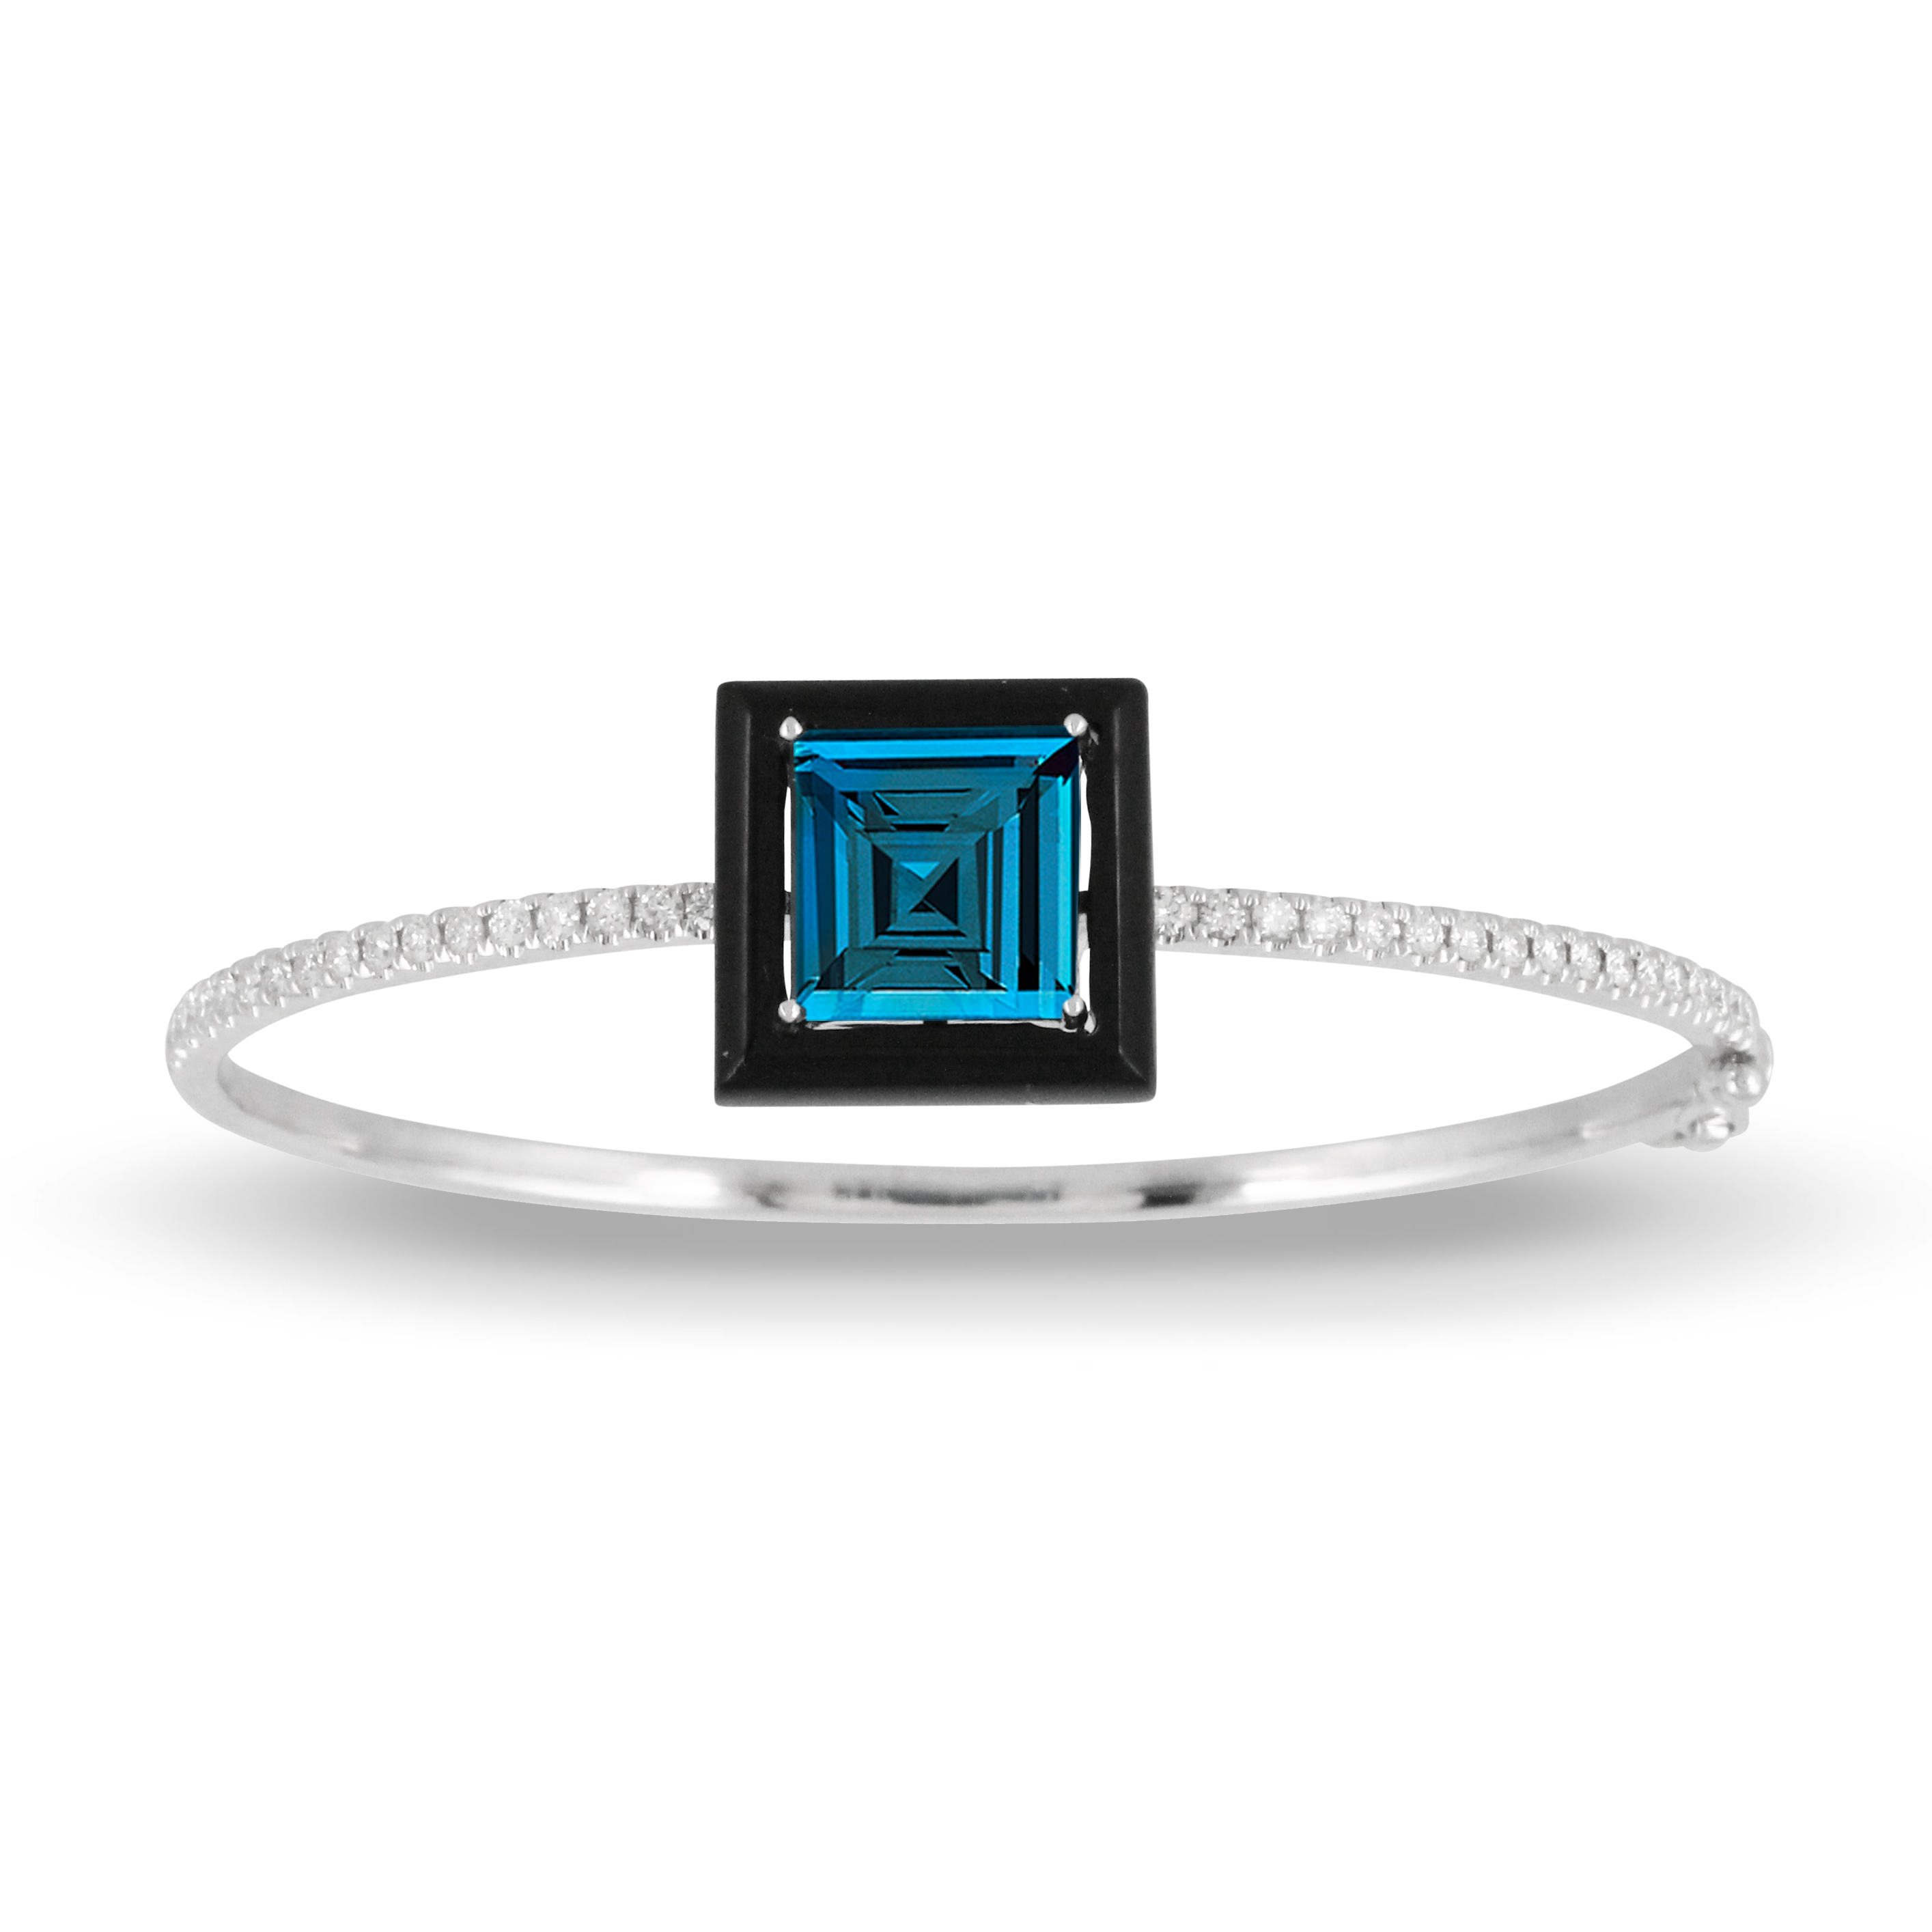 18K Diamond Gemstone Bangle - 18K White Gold Diamond Bangle With Black Onyx And London Blue Topaz Center